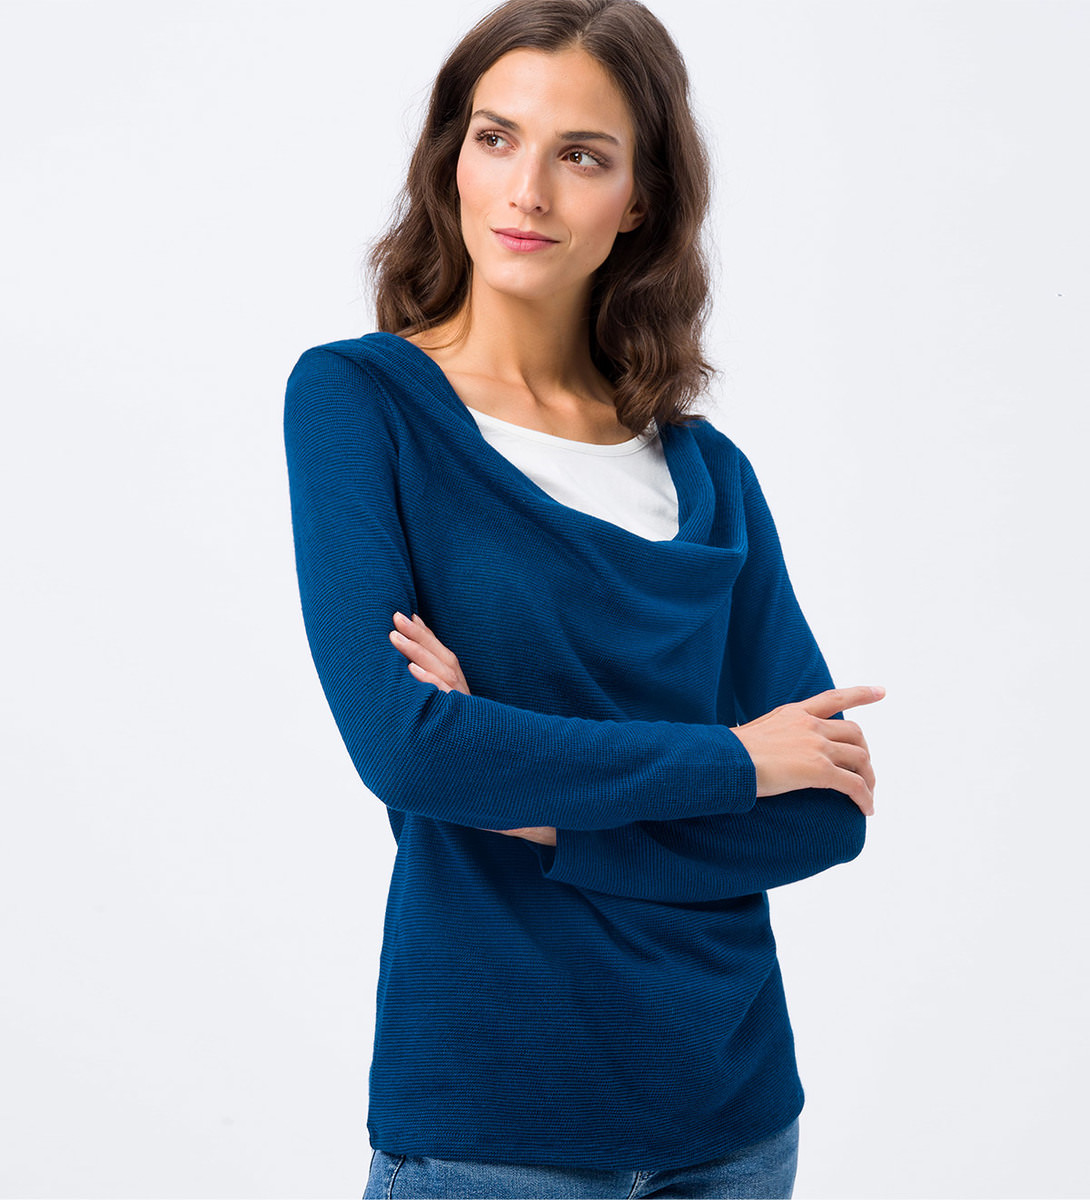 Sweatshirt mit Layer-Optik in petrol blue